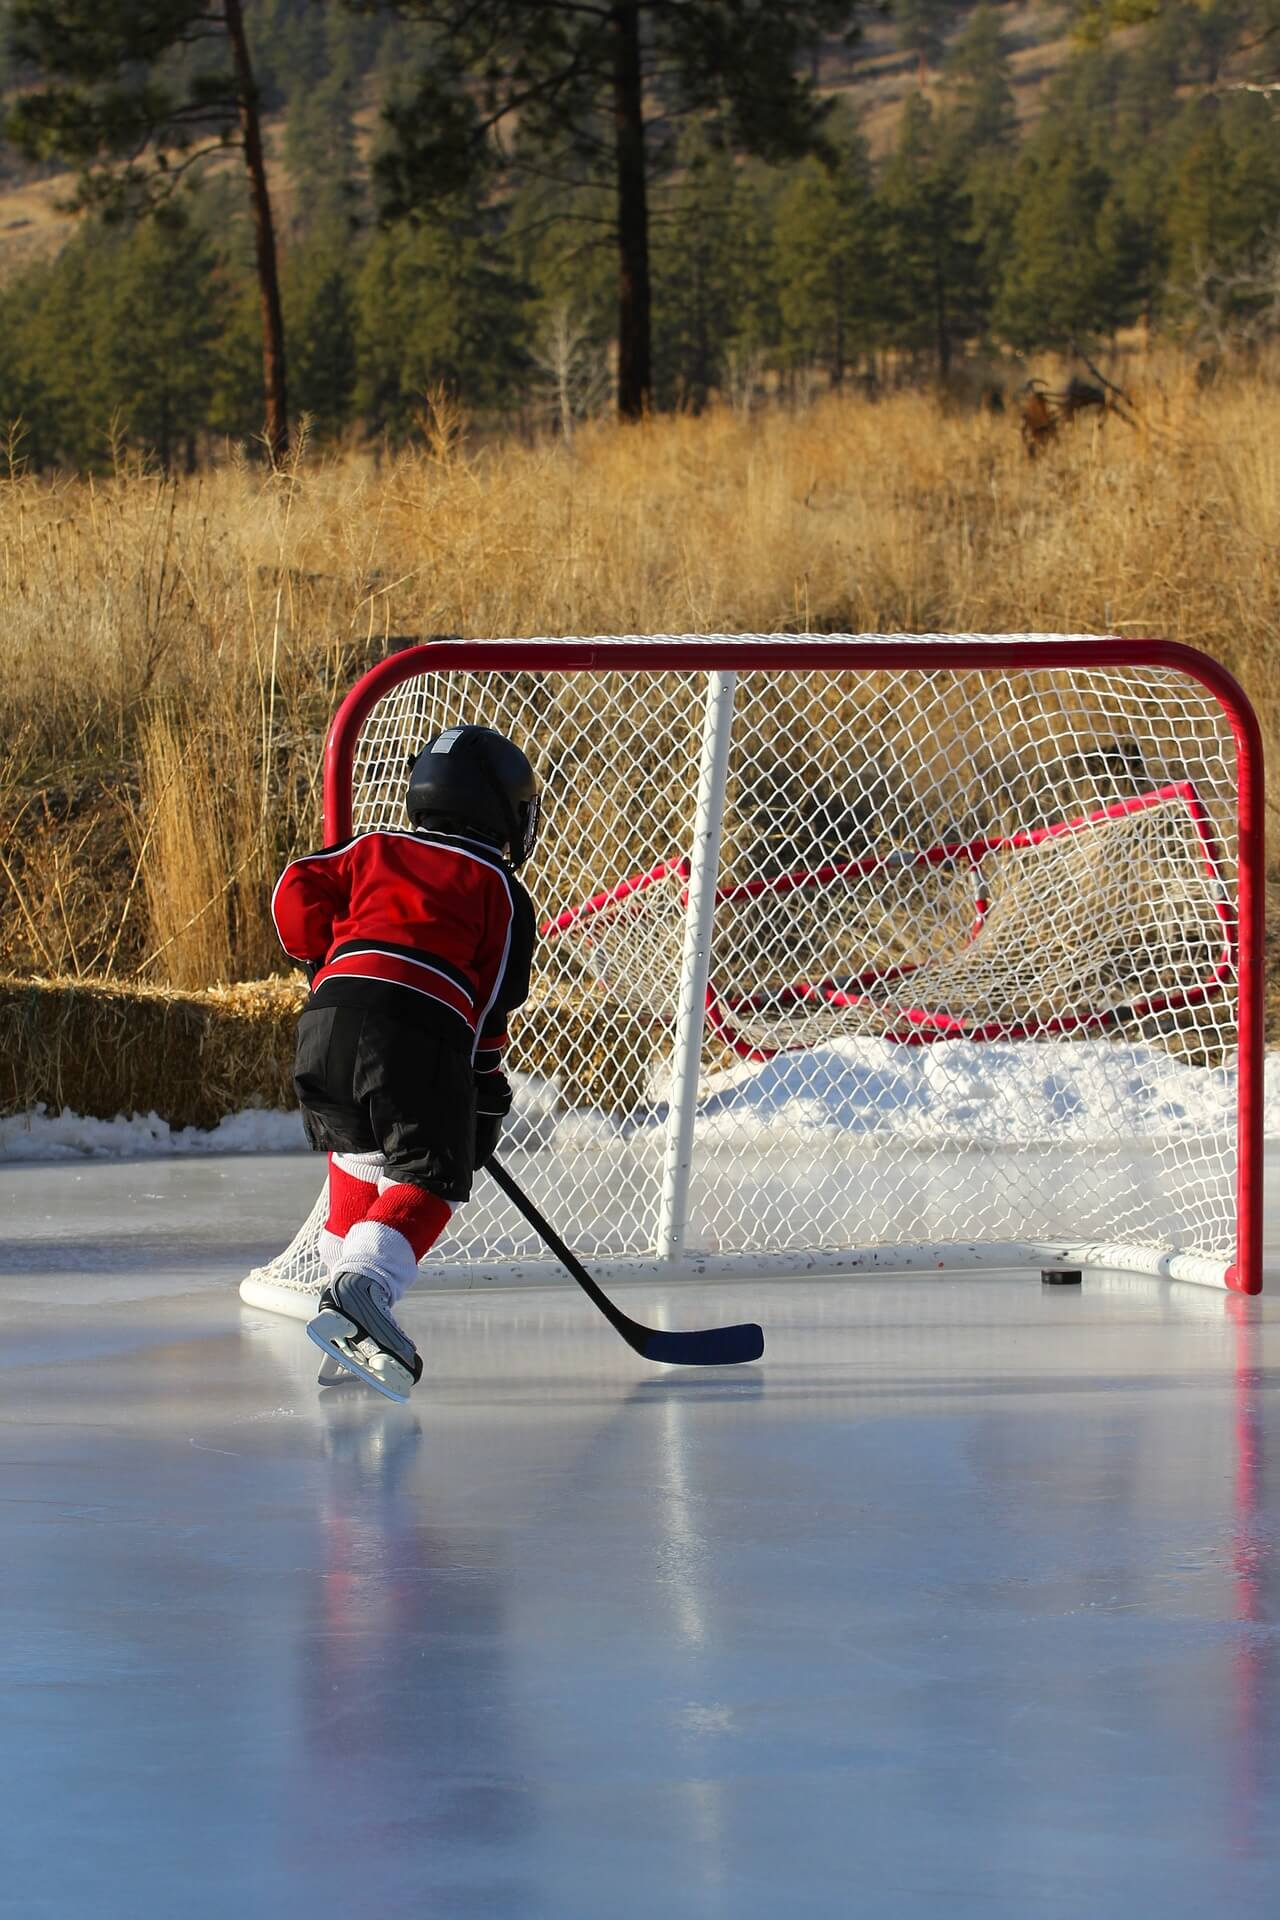 USA Hockey is working to develop athletes properly and appropriately from a young age.